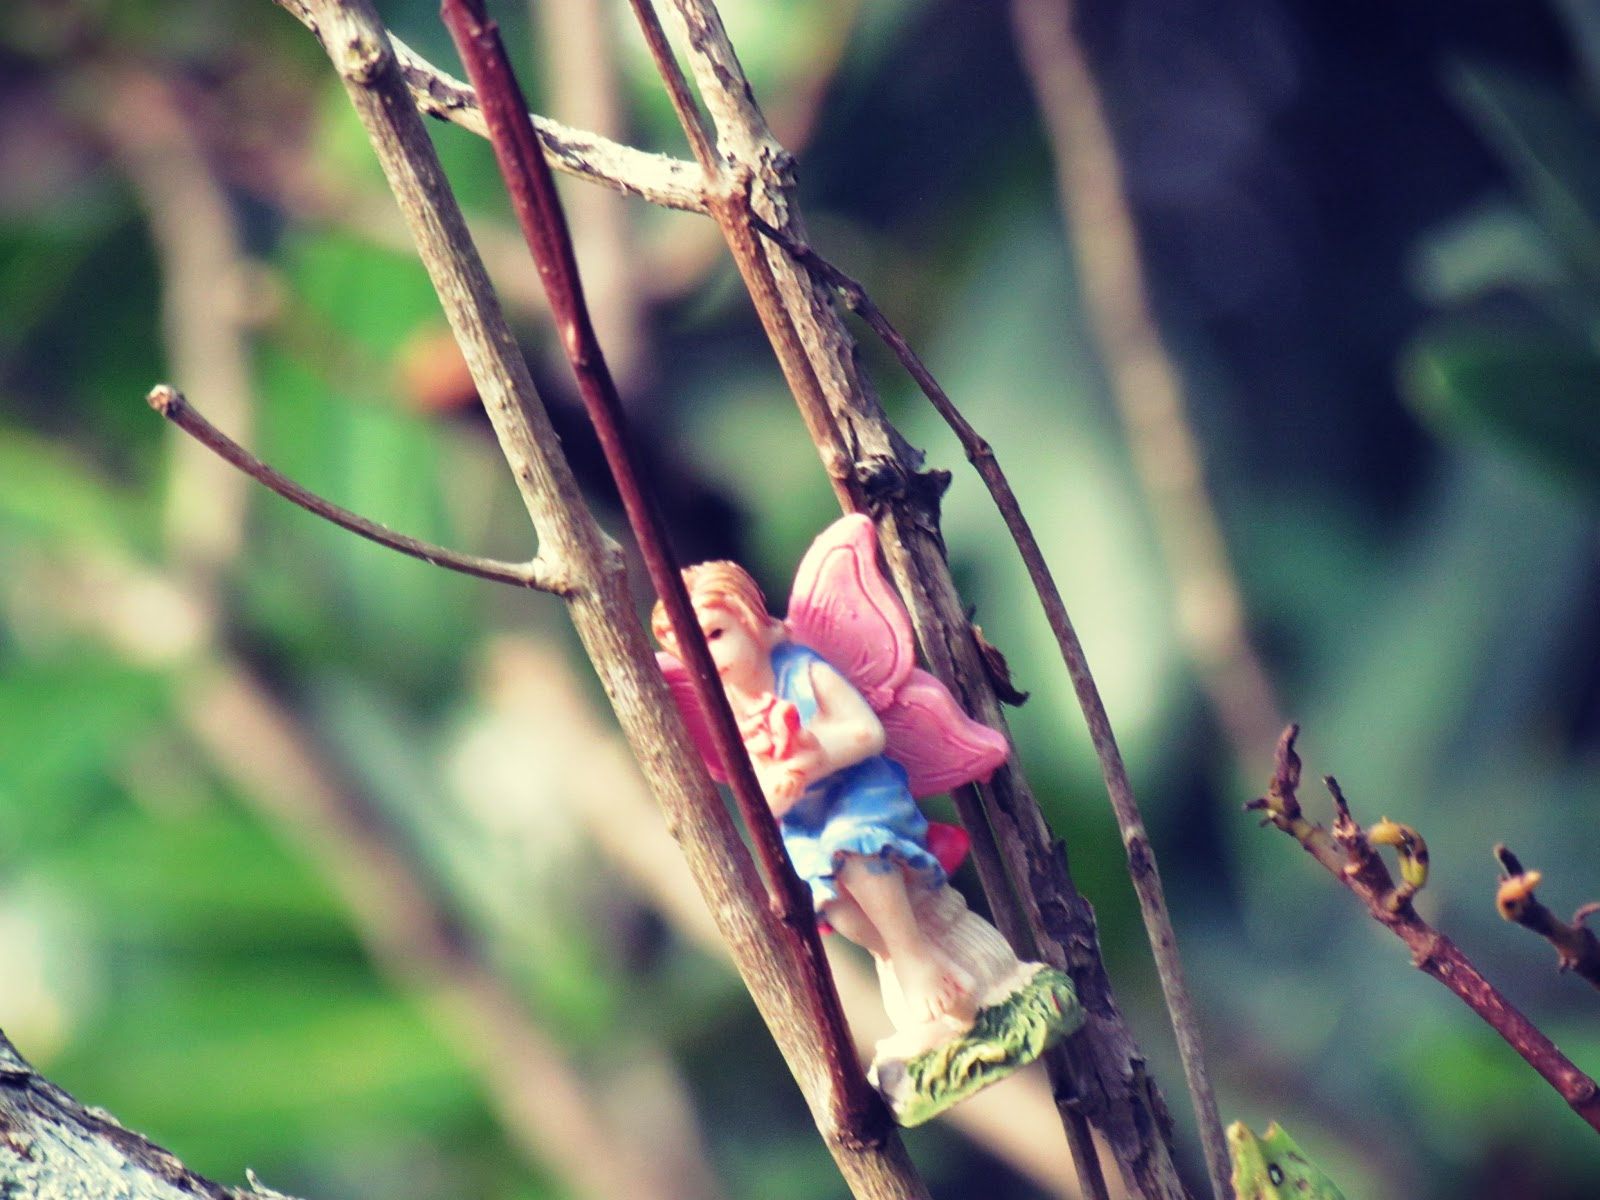 A fairy hidden in plain sight with fairy figurine nestled in tree branches and twigs